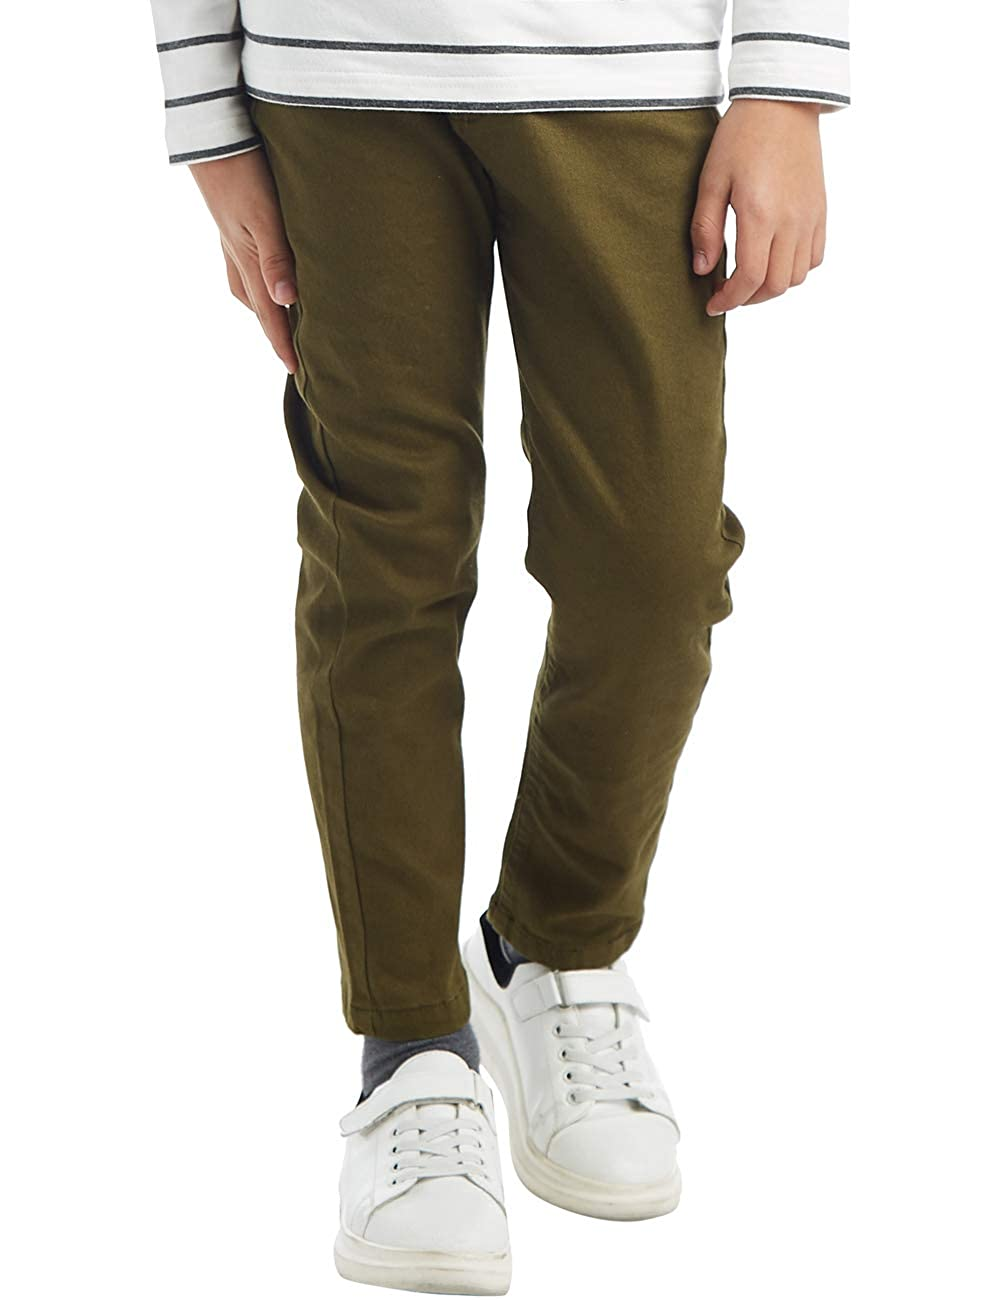 84b17f9226 Online Cheap wholesale BYCR Boys Skinny Elastic Waistband Cotton Camo Cargo  Jogging Pants Pants Suppliers